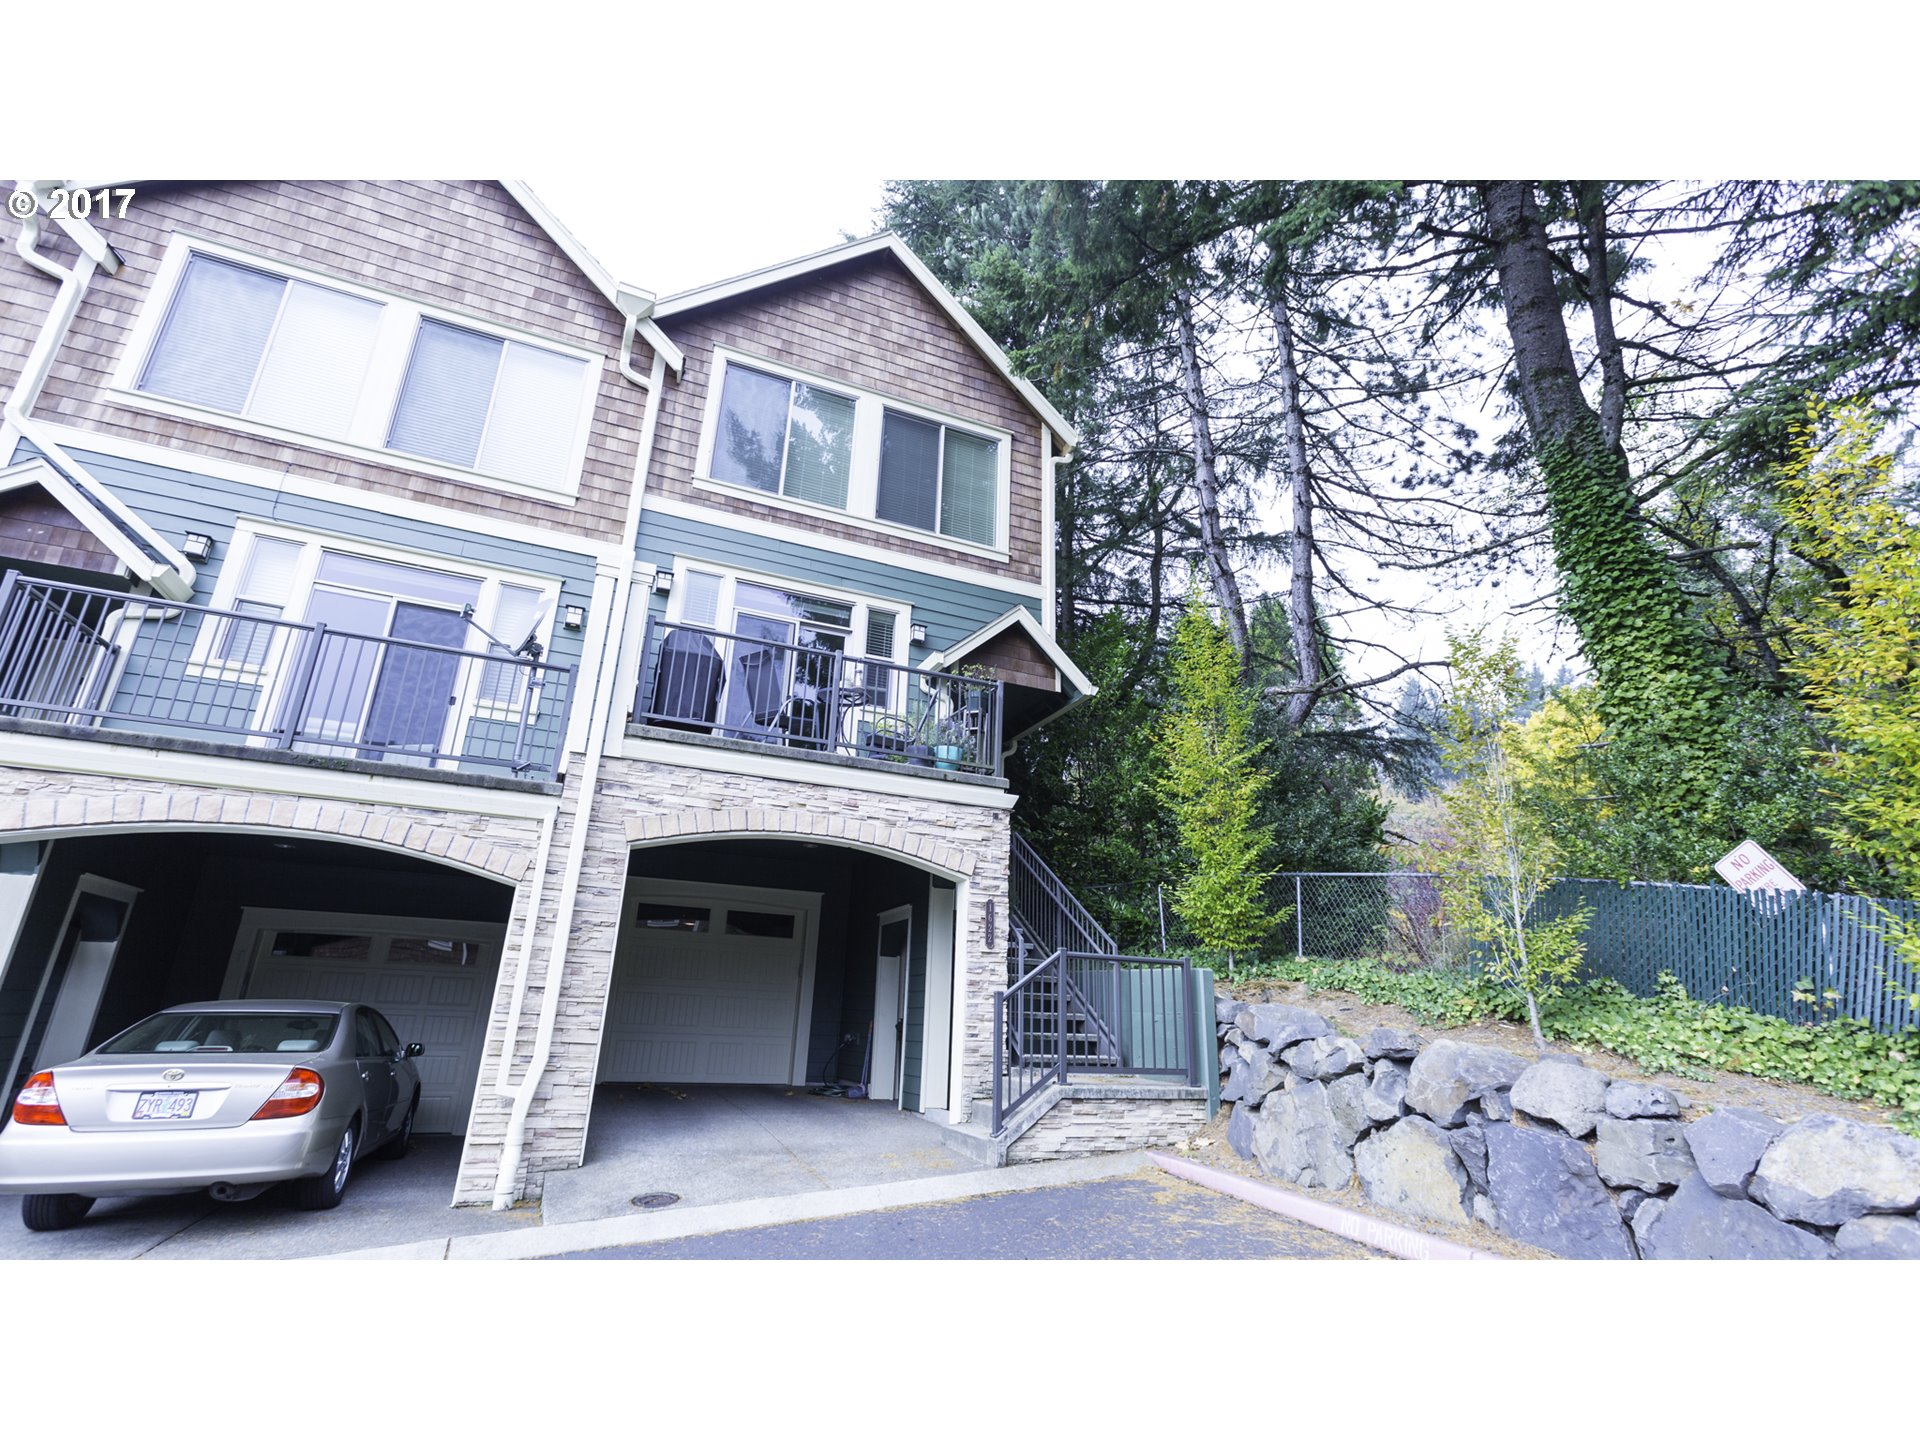 1593 sq. ft 2 bedrooms 2 bathrooms  House For Sale,Portland, OR